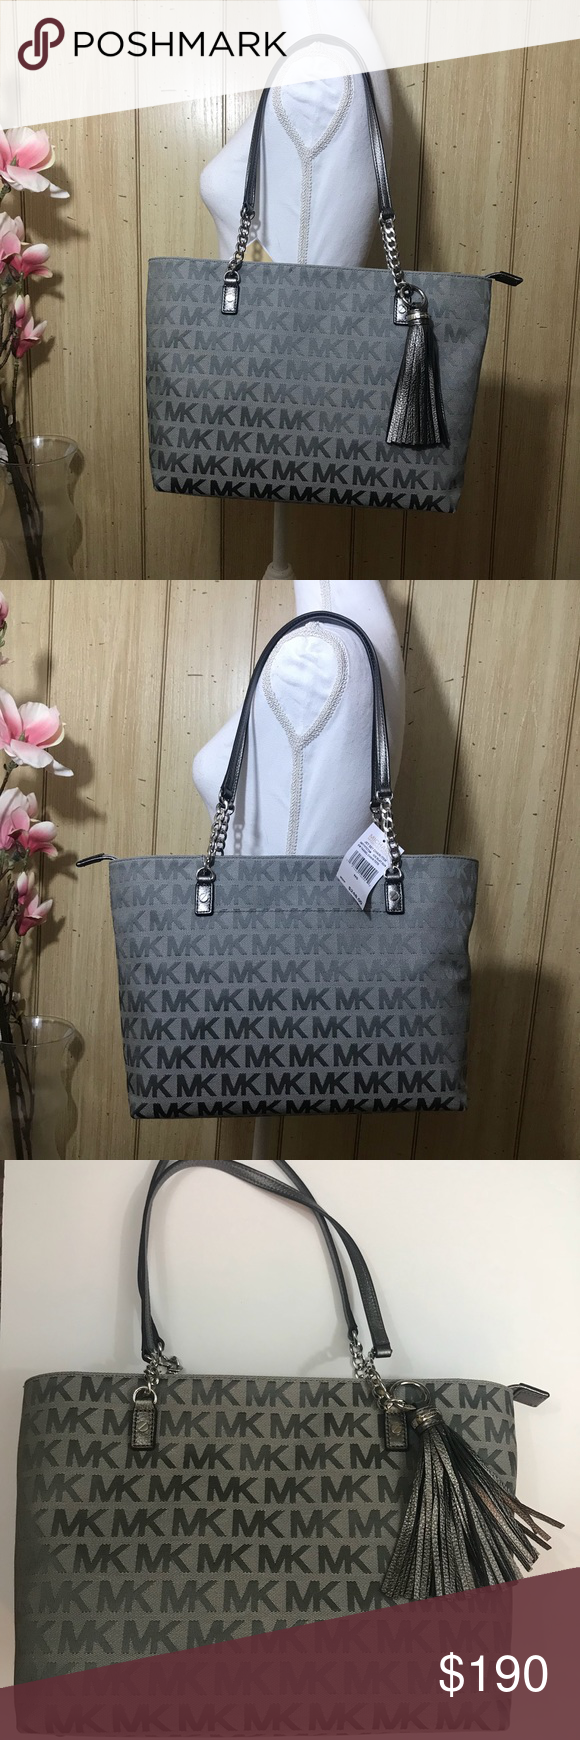 d15ae694cc7 Michael Kors Jet Set Tote Chain Tassel NWT EW Zip 100% Authentic Jet Set EW